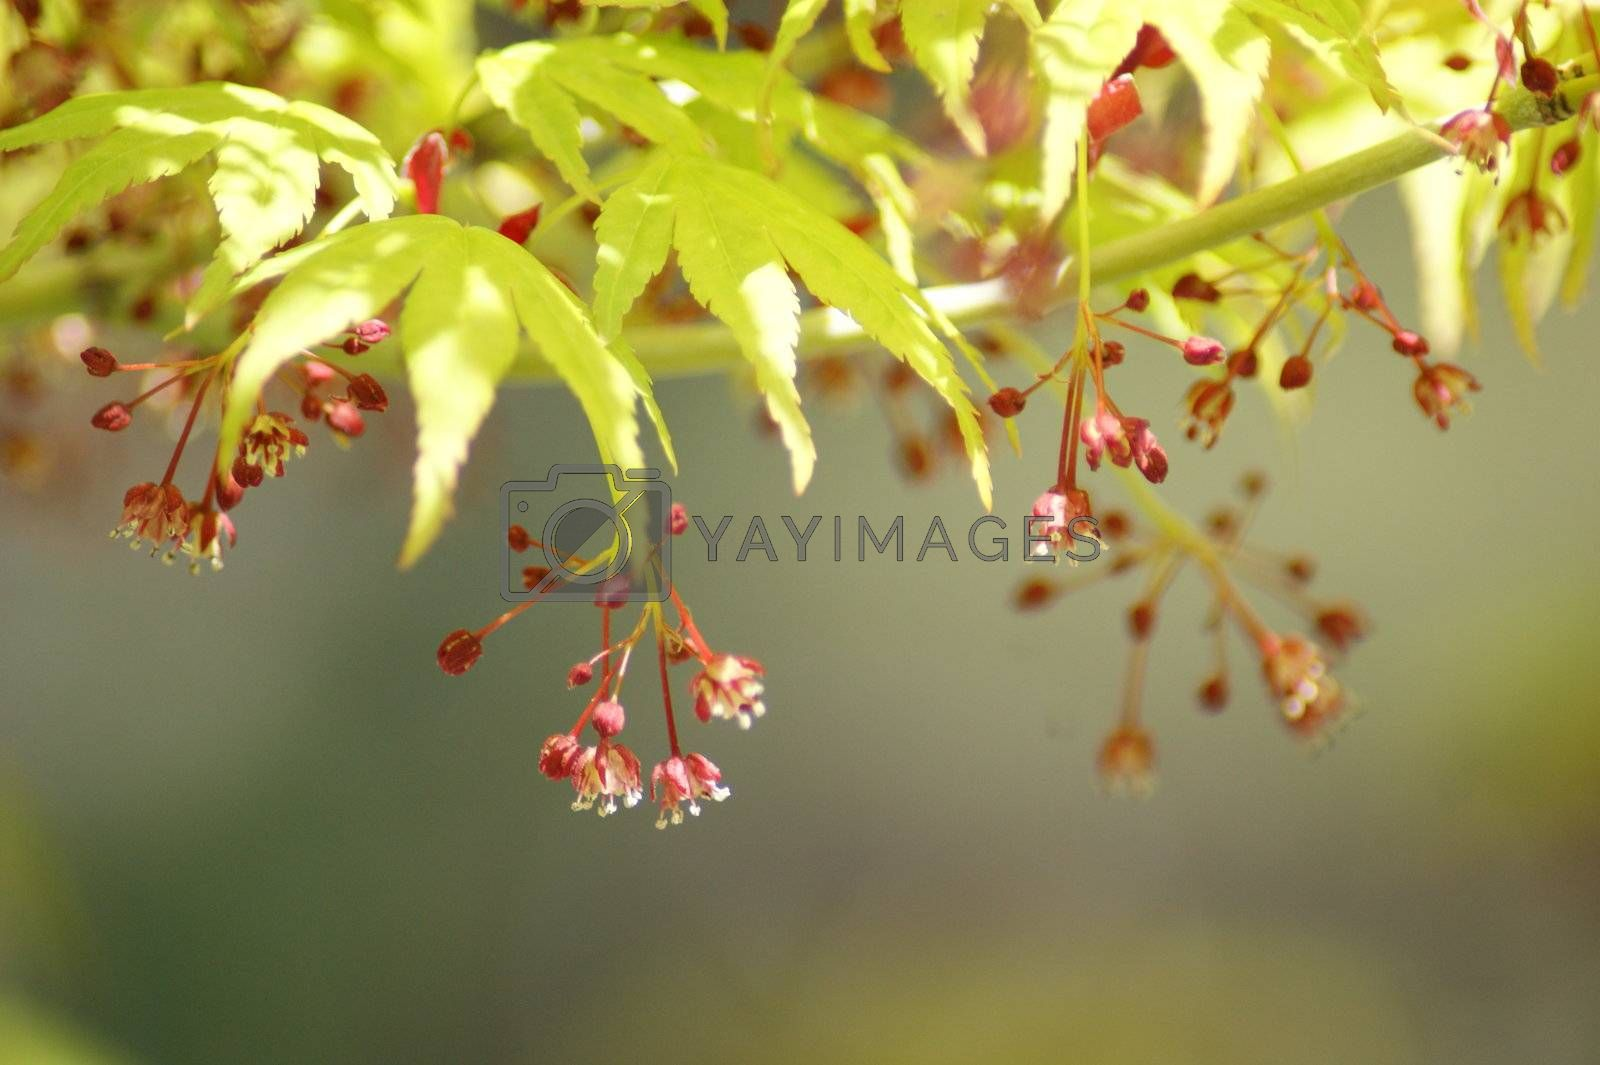 -Japanese Maple in its early bloom.